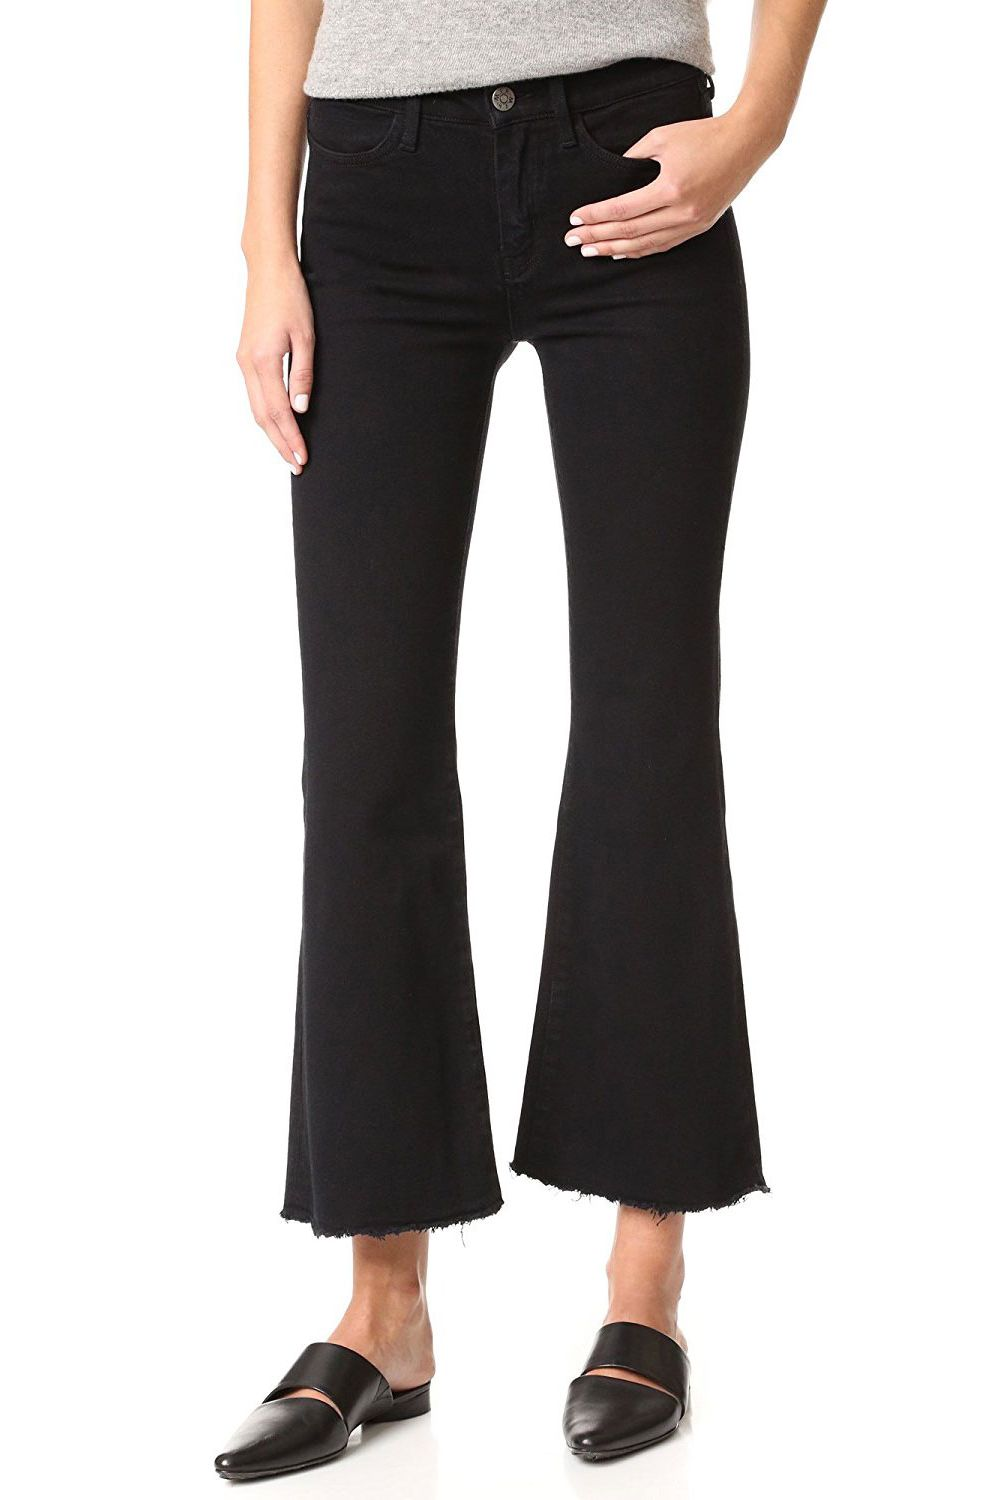 M.I.H. Women's Lou Fray Flare Jeans